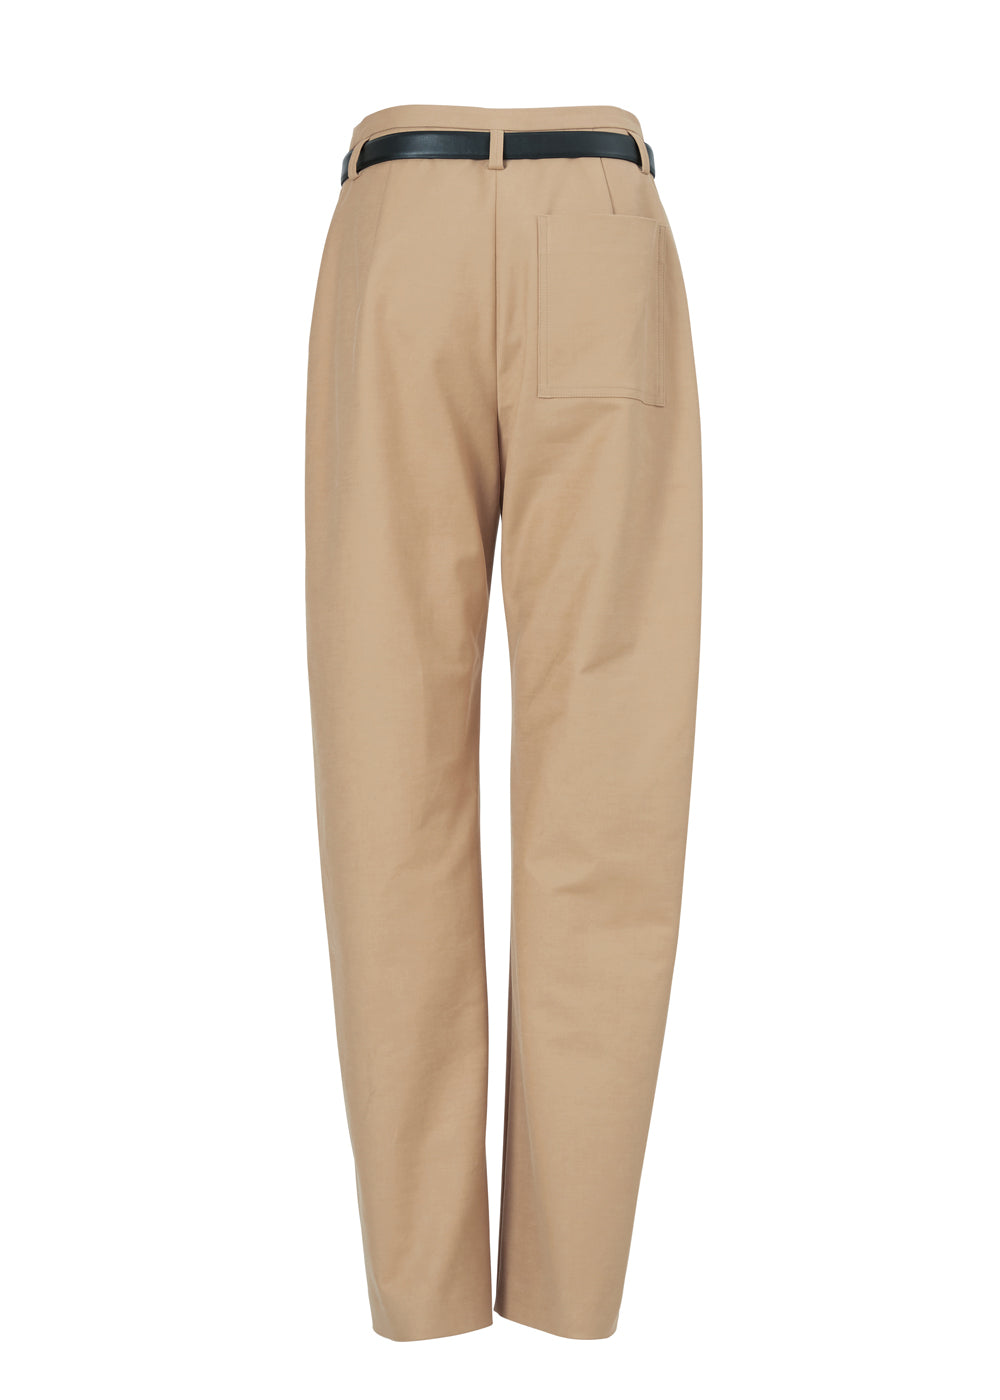 UNDER BELT COTTON PANTS MUSTARD